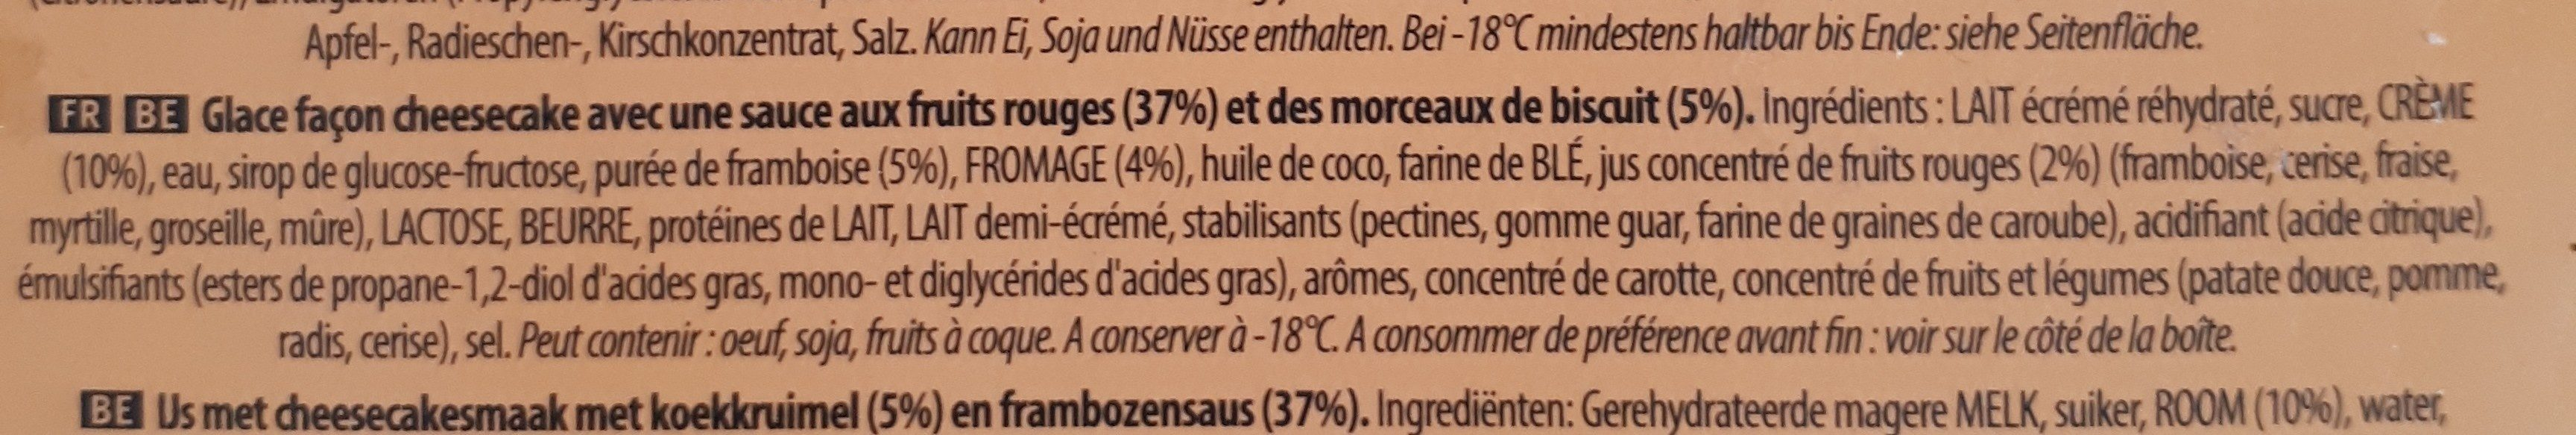 Carte D'or Les Verrines Glace Cheesecake Framboise 60ml 4 pièces - Ingrediënten - fr